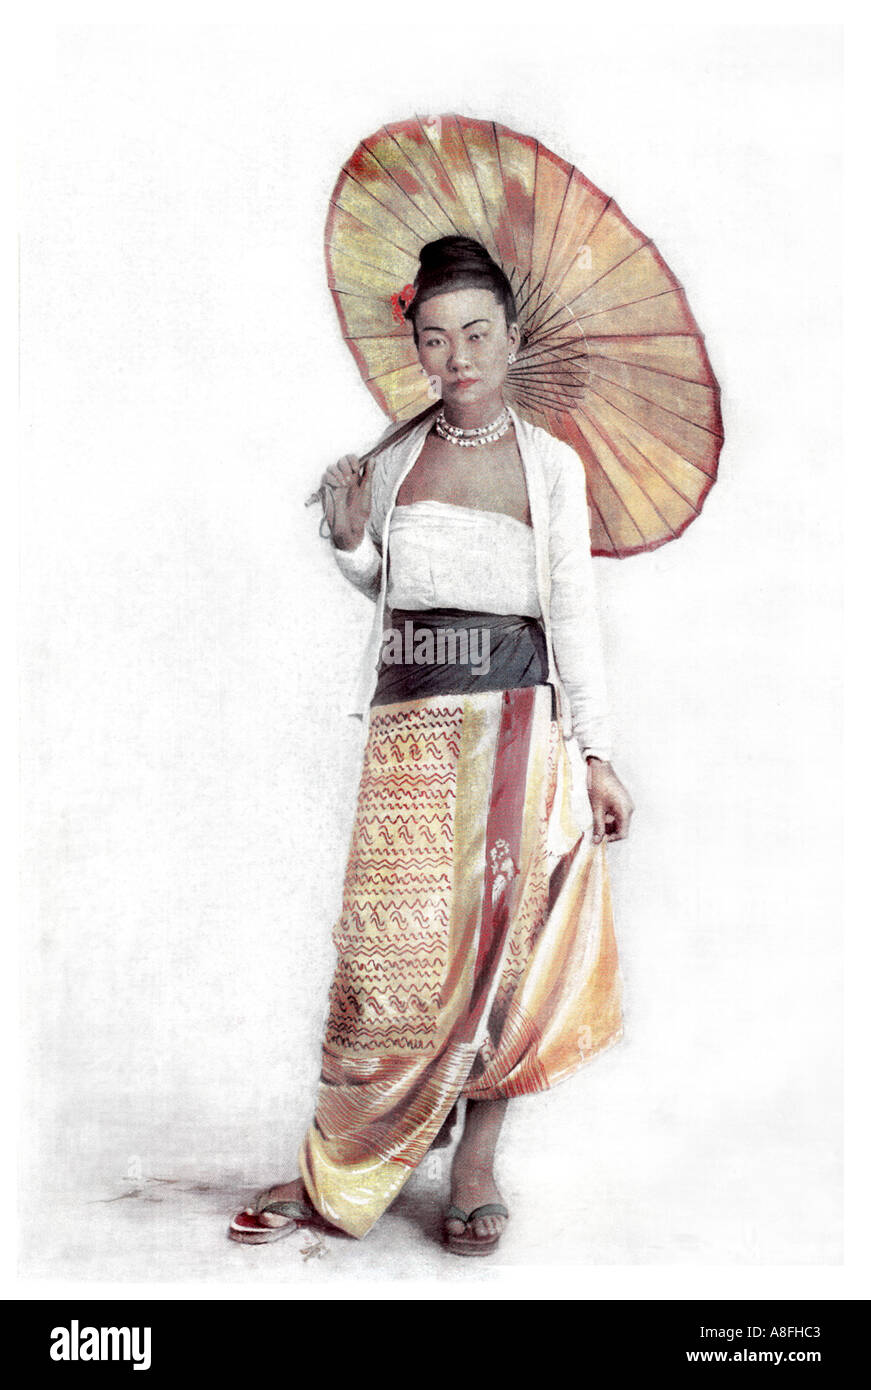 Late Nineteenth Century colour litho print depicting a Burmese lady with a Parasol Rangoon Burma Antique lithographic Stock Photo